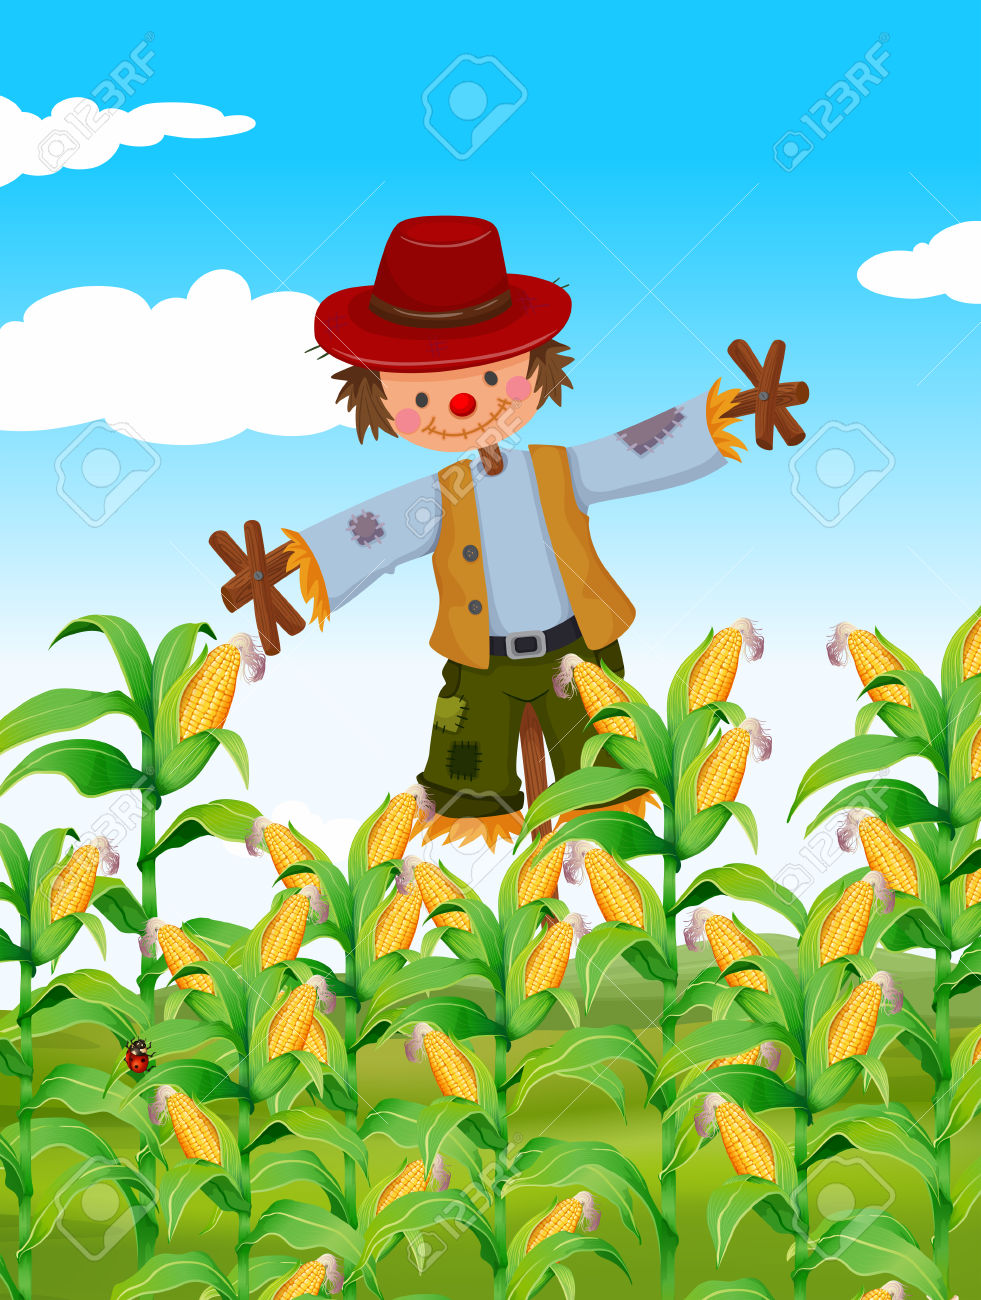 Scarecrow Standing In Corn Field Illustration Royalty Free.